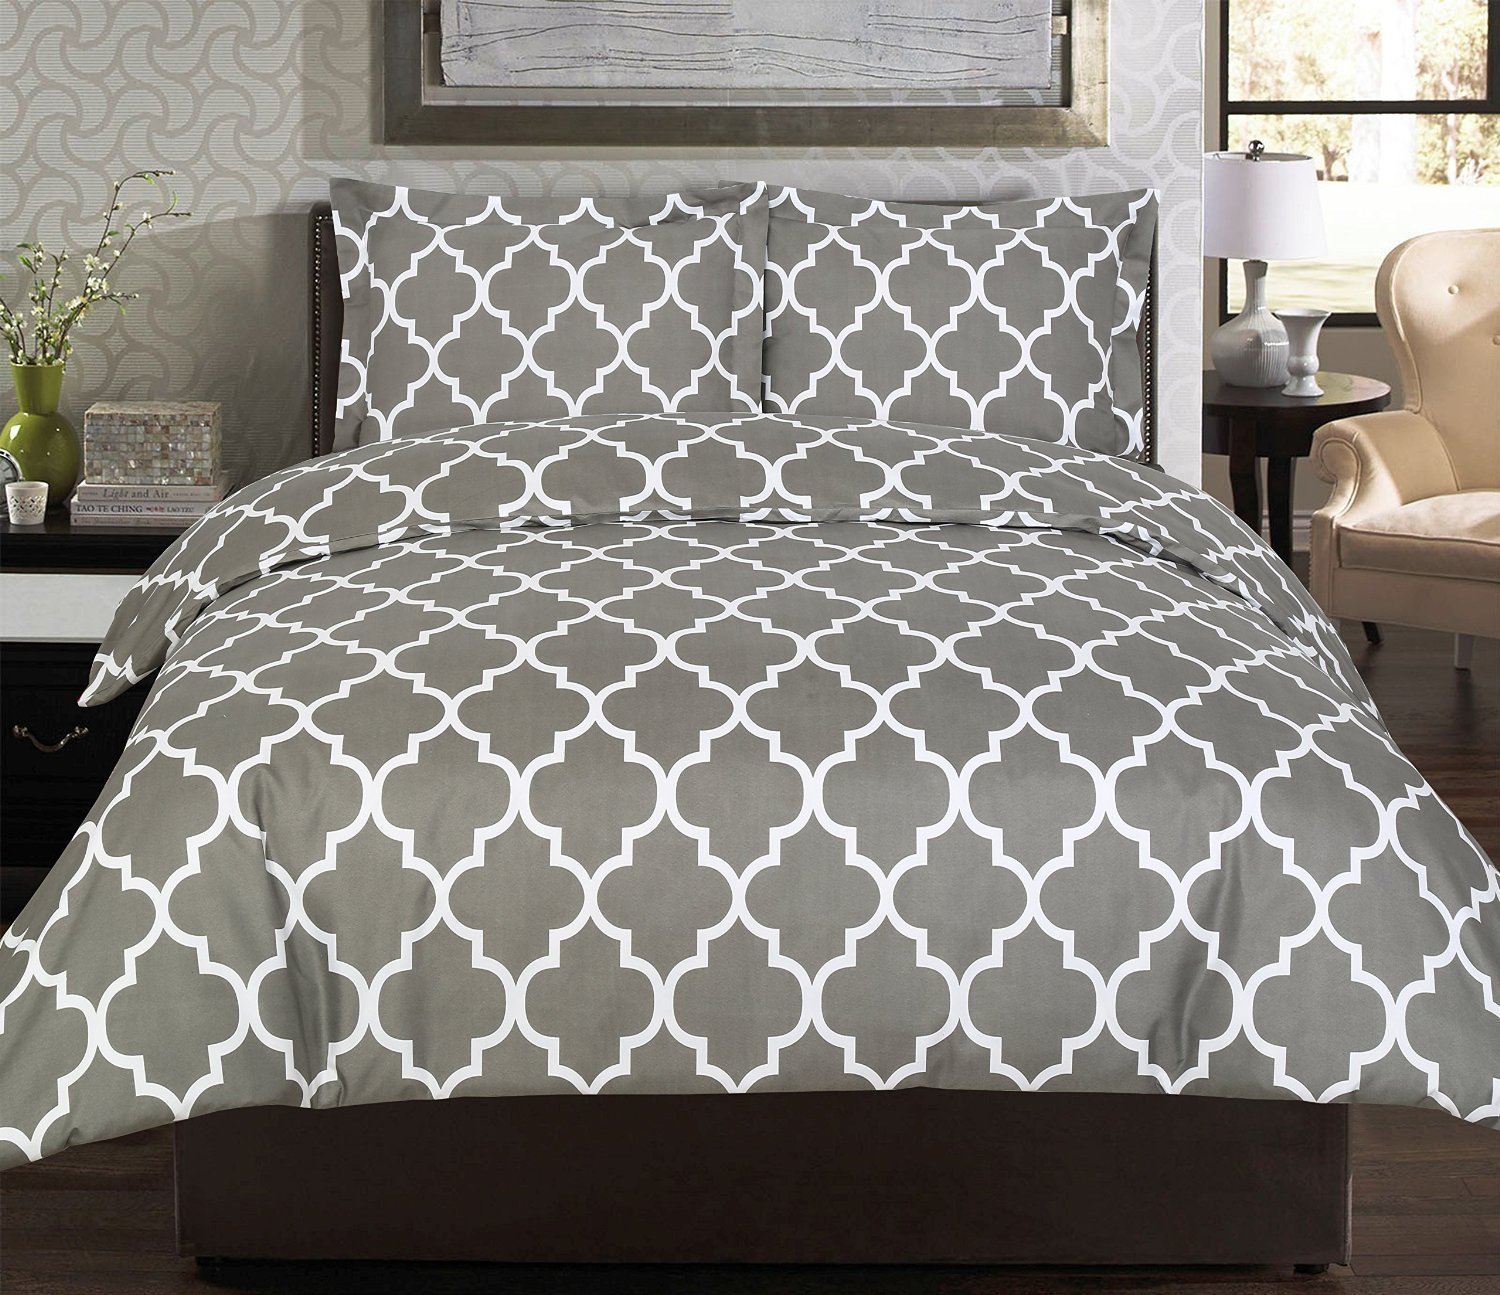 3 Piece Duvet Cover Set King, Grey